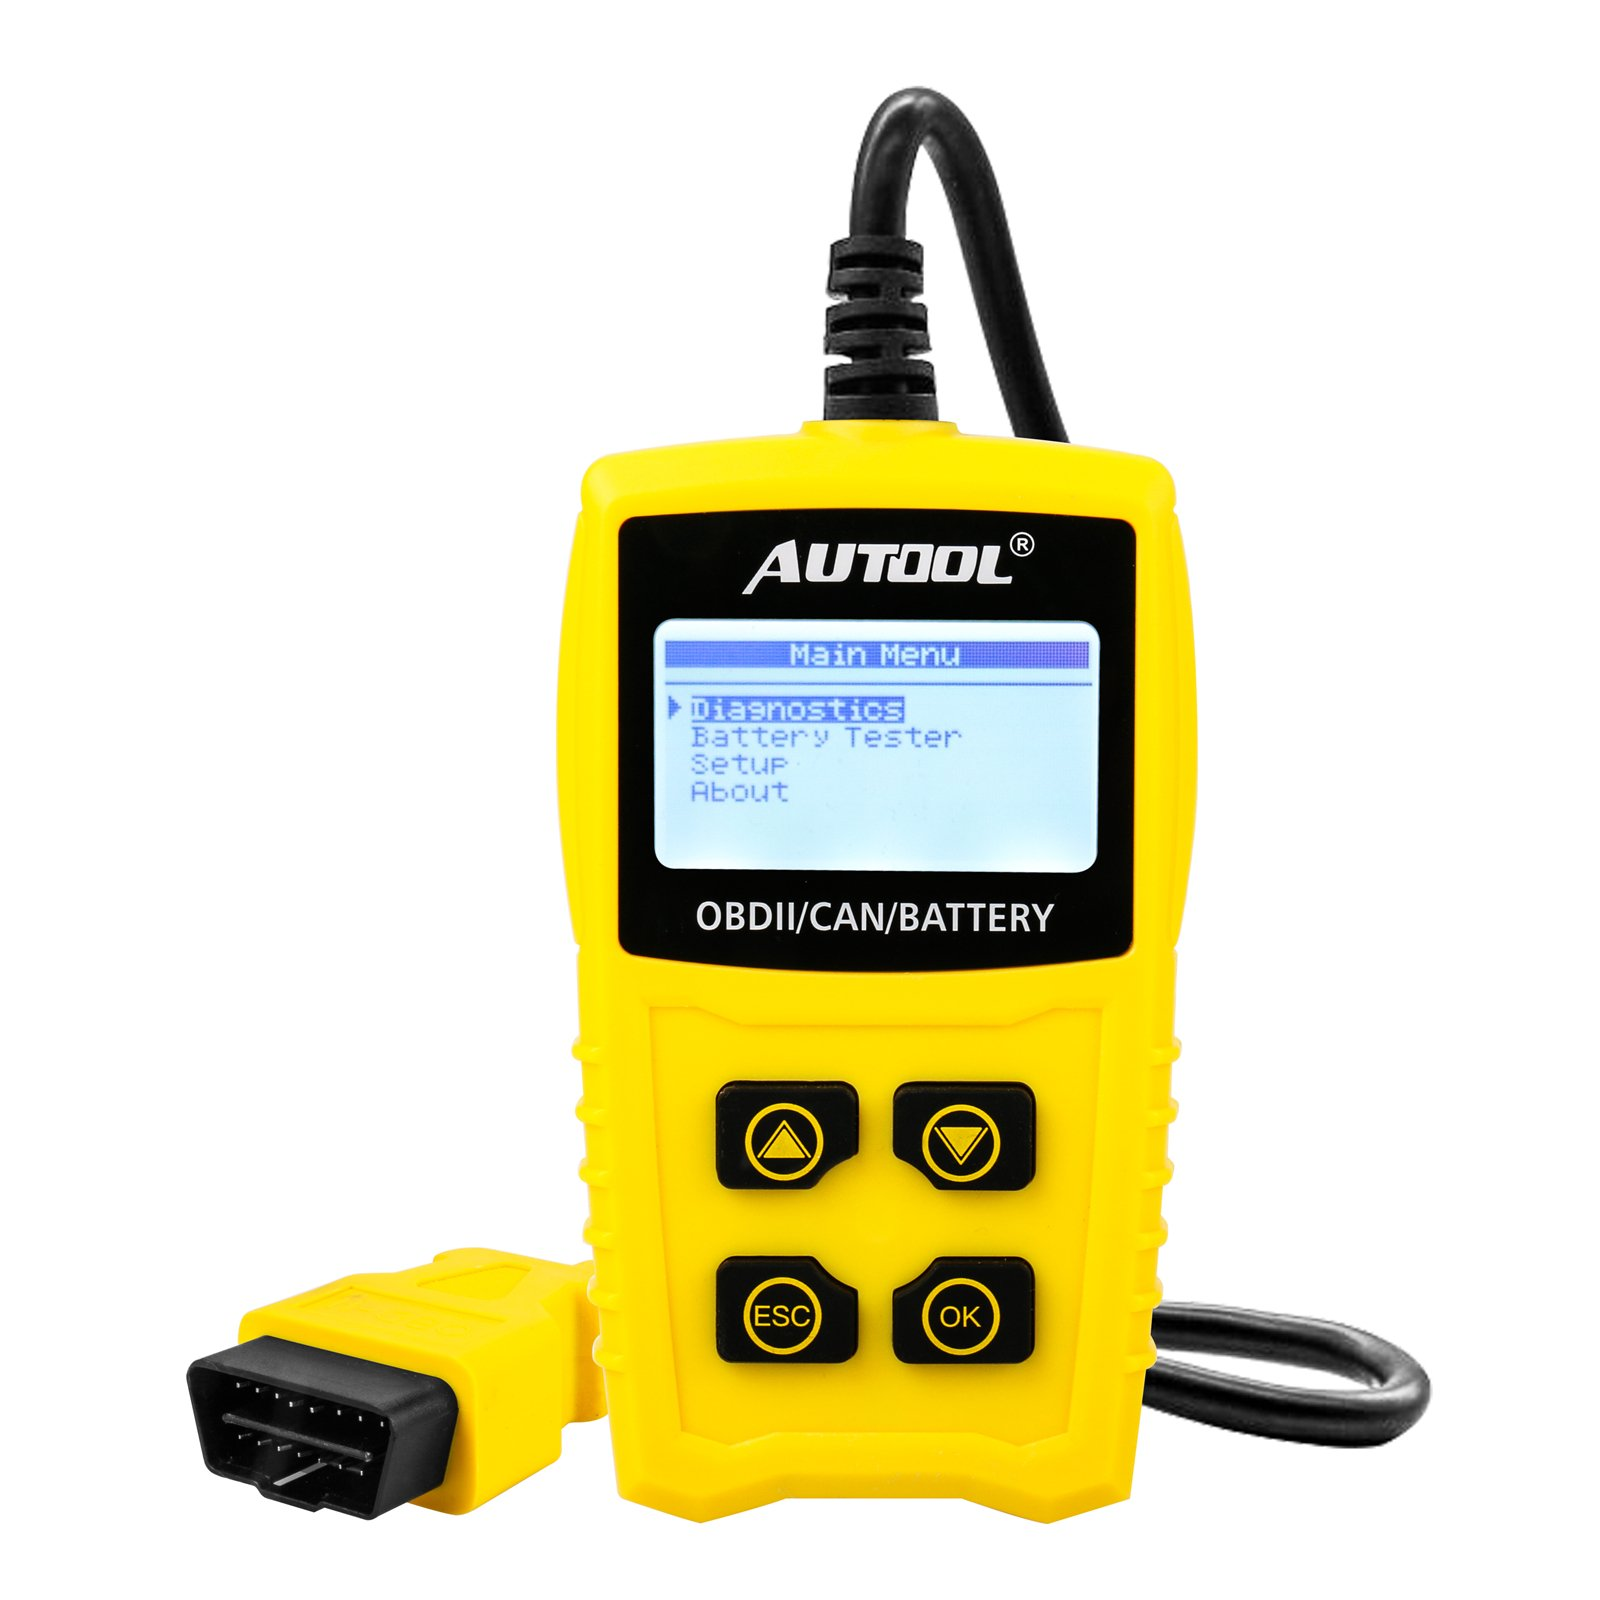 AUTOOL OBD2/EOBD Code Reader, CS330 Automative Diagnostic Code Scanner with Voltage Meter Car Engine Fault Code Reader with I/M Readiness for CAN OBD 12V SUV/Car/Van by AUTOOL (Image #1)